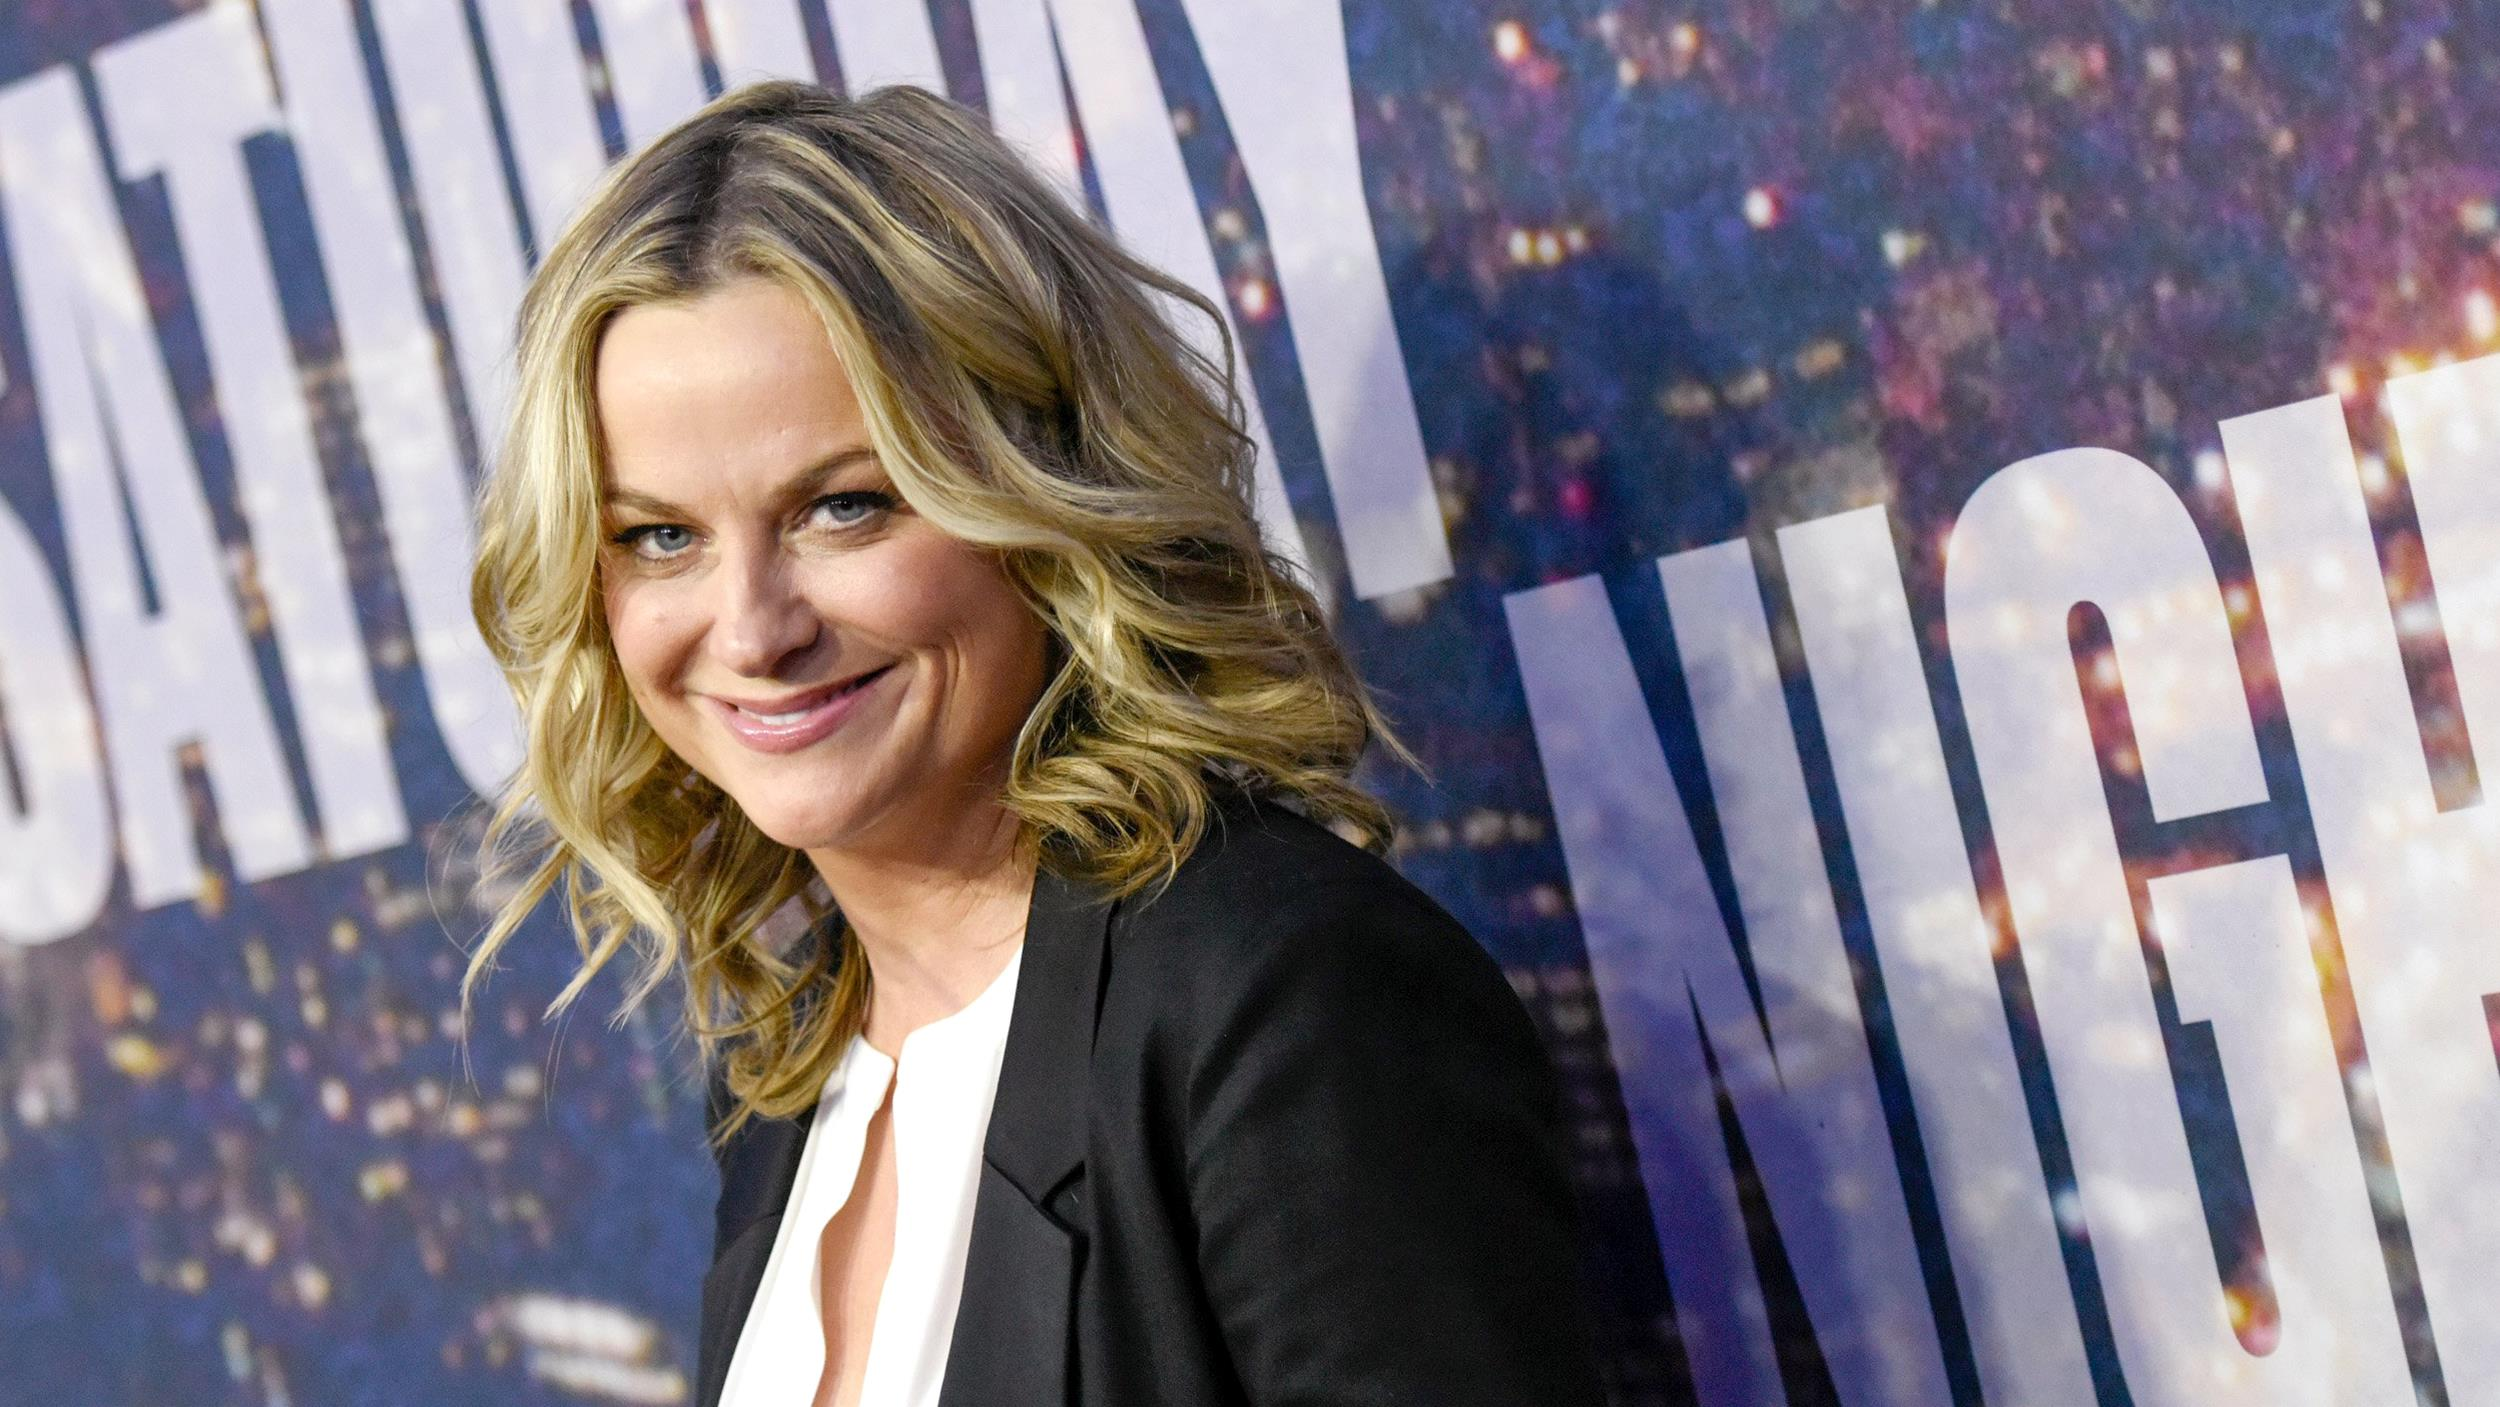 22+ Amy Poehler Natural Hair Color Pictures